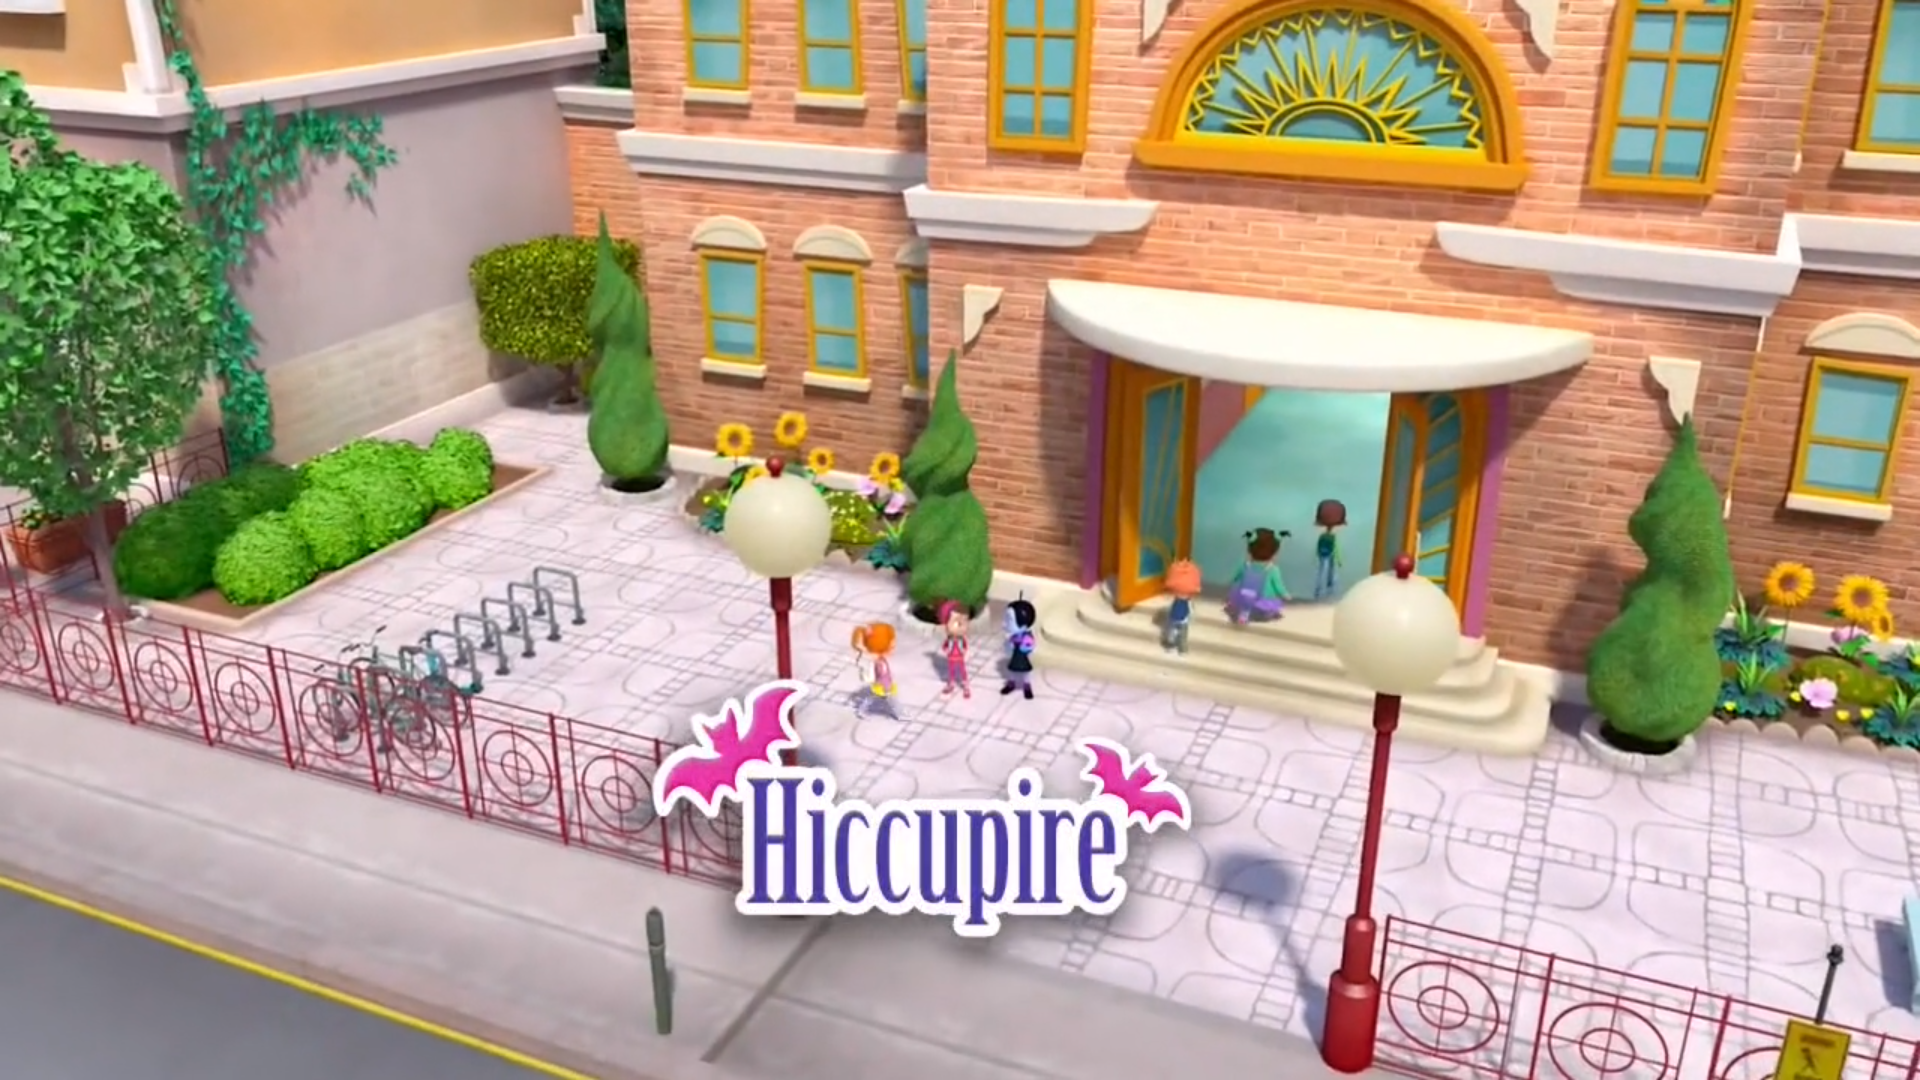 Hiccupire